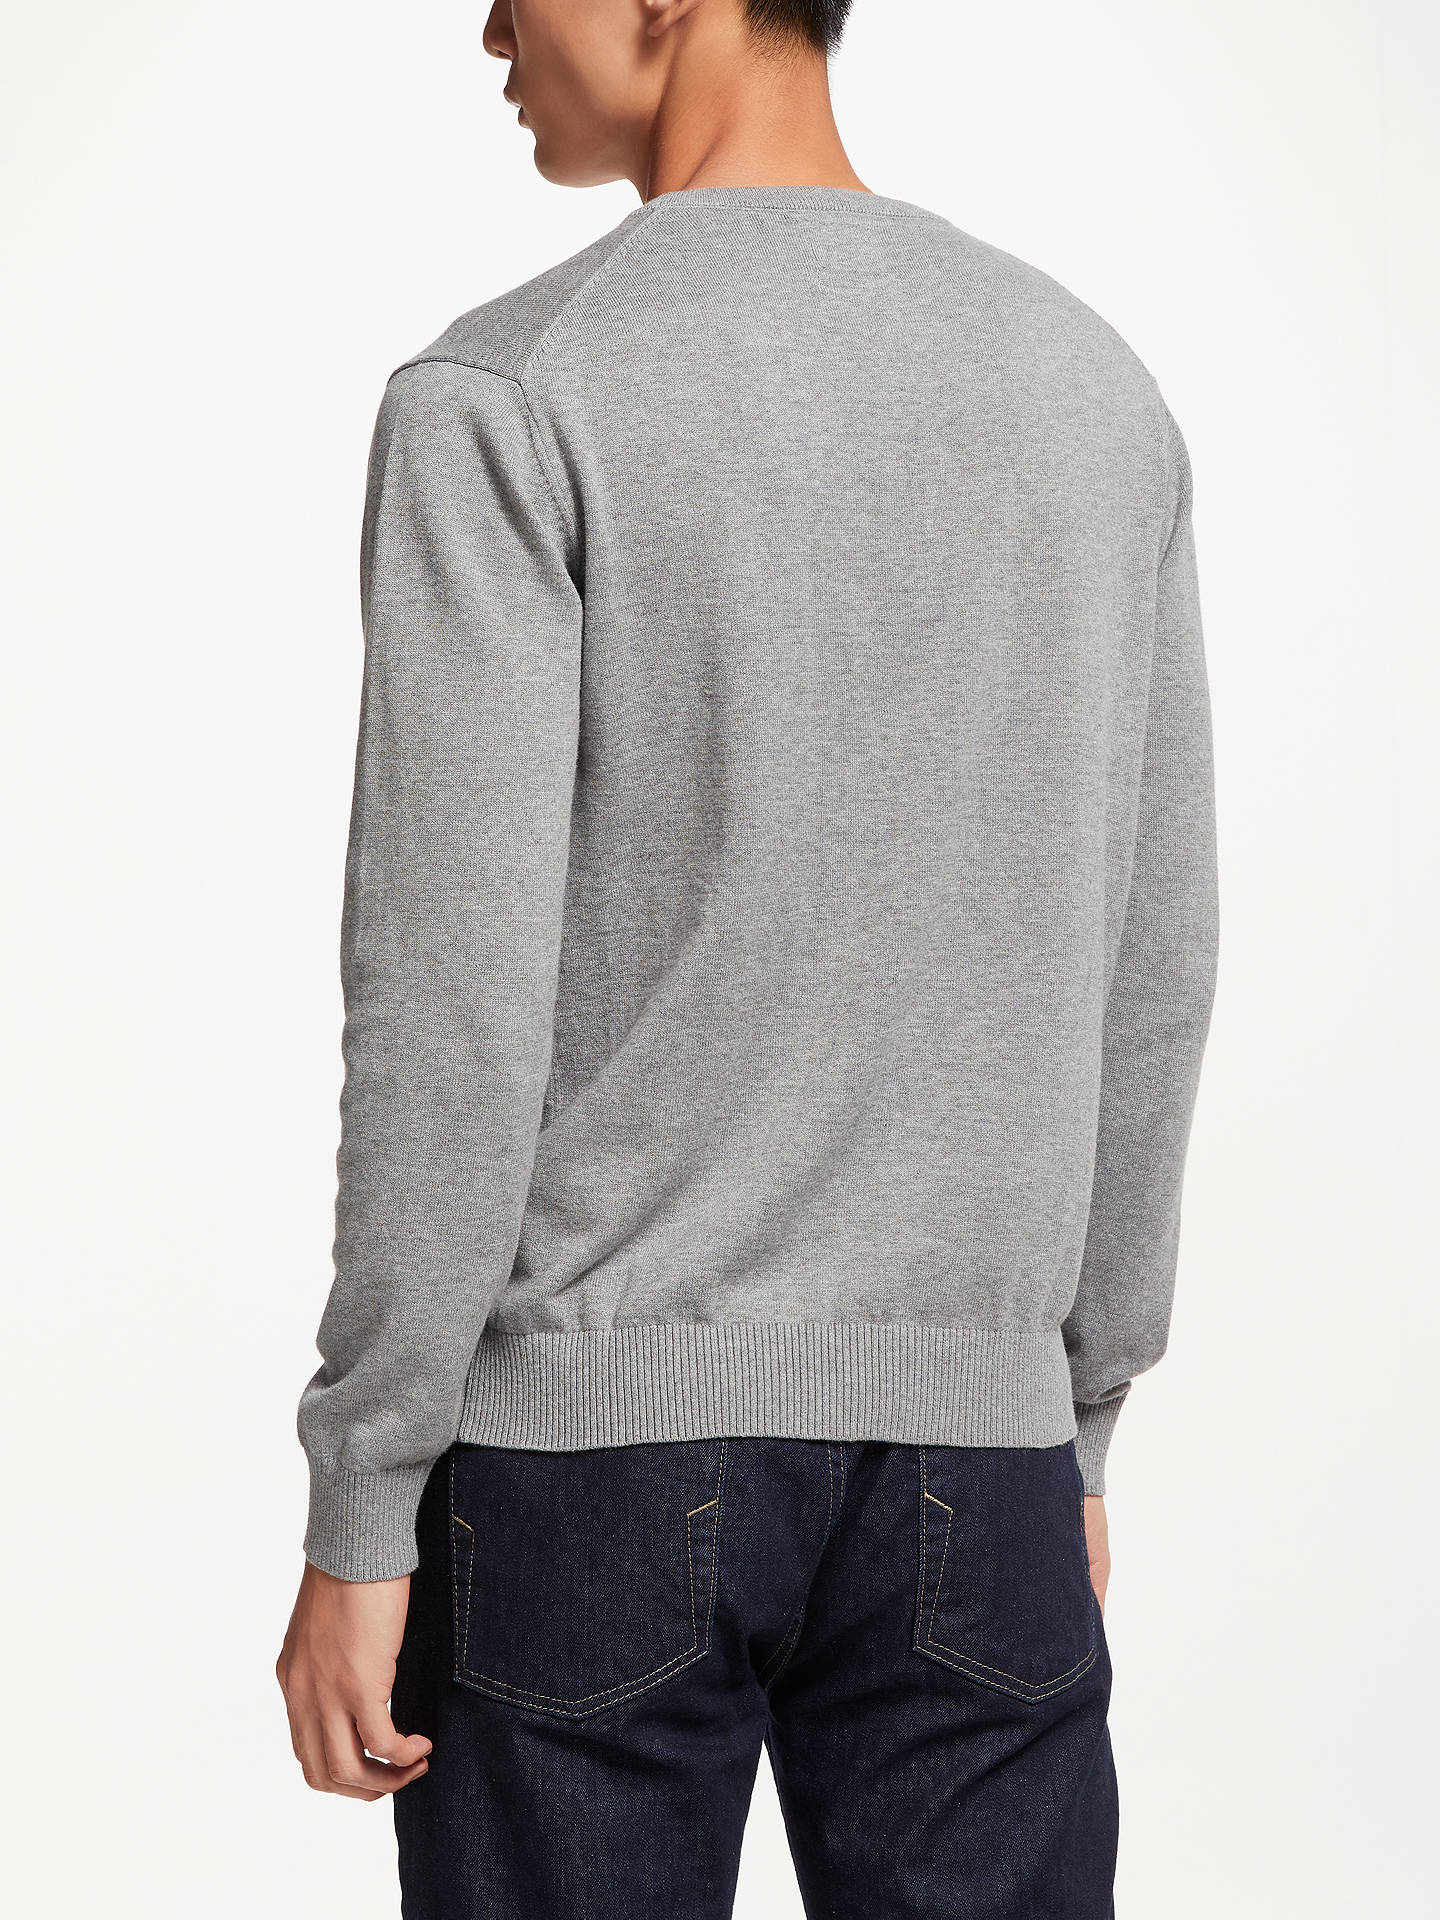 BuyJoules Earl Crew Neck Jumper, Grey Marl, L Online at johnlewis.com